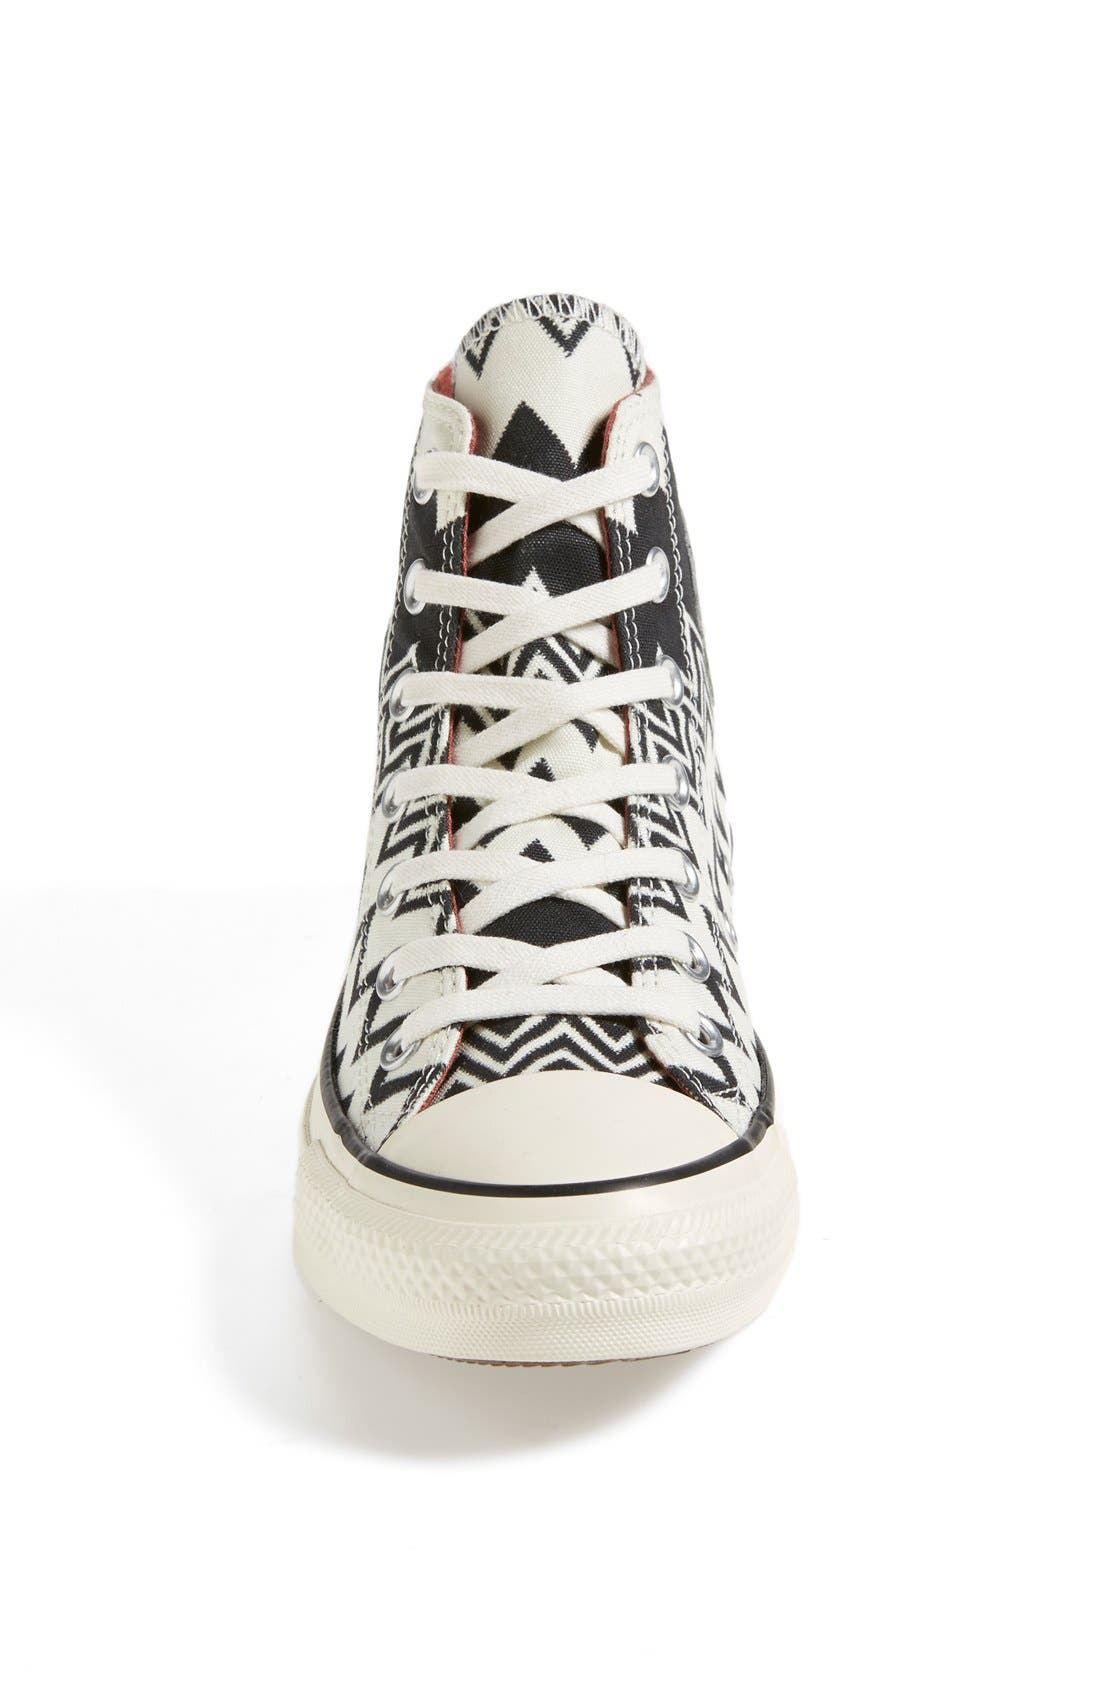 x Missoni Chuck Taylor<sup>®</sup> All Star<sup>®</sup> High Top Sneaker,                             Alternate thumbnail 4, color,                             001